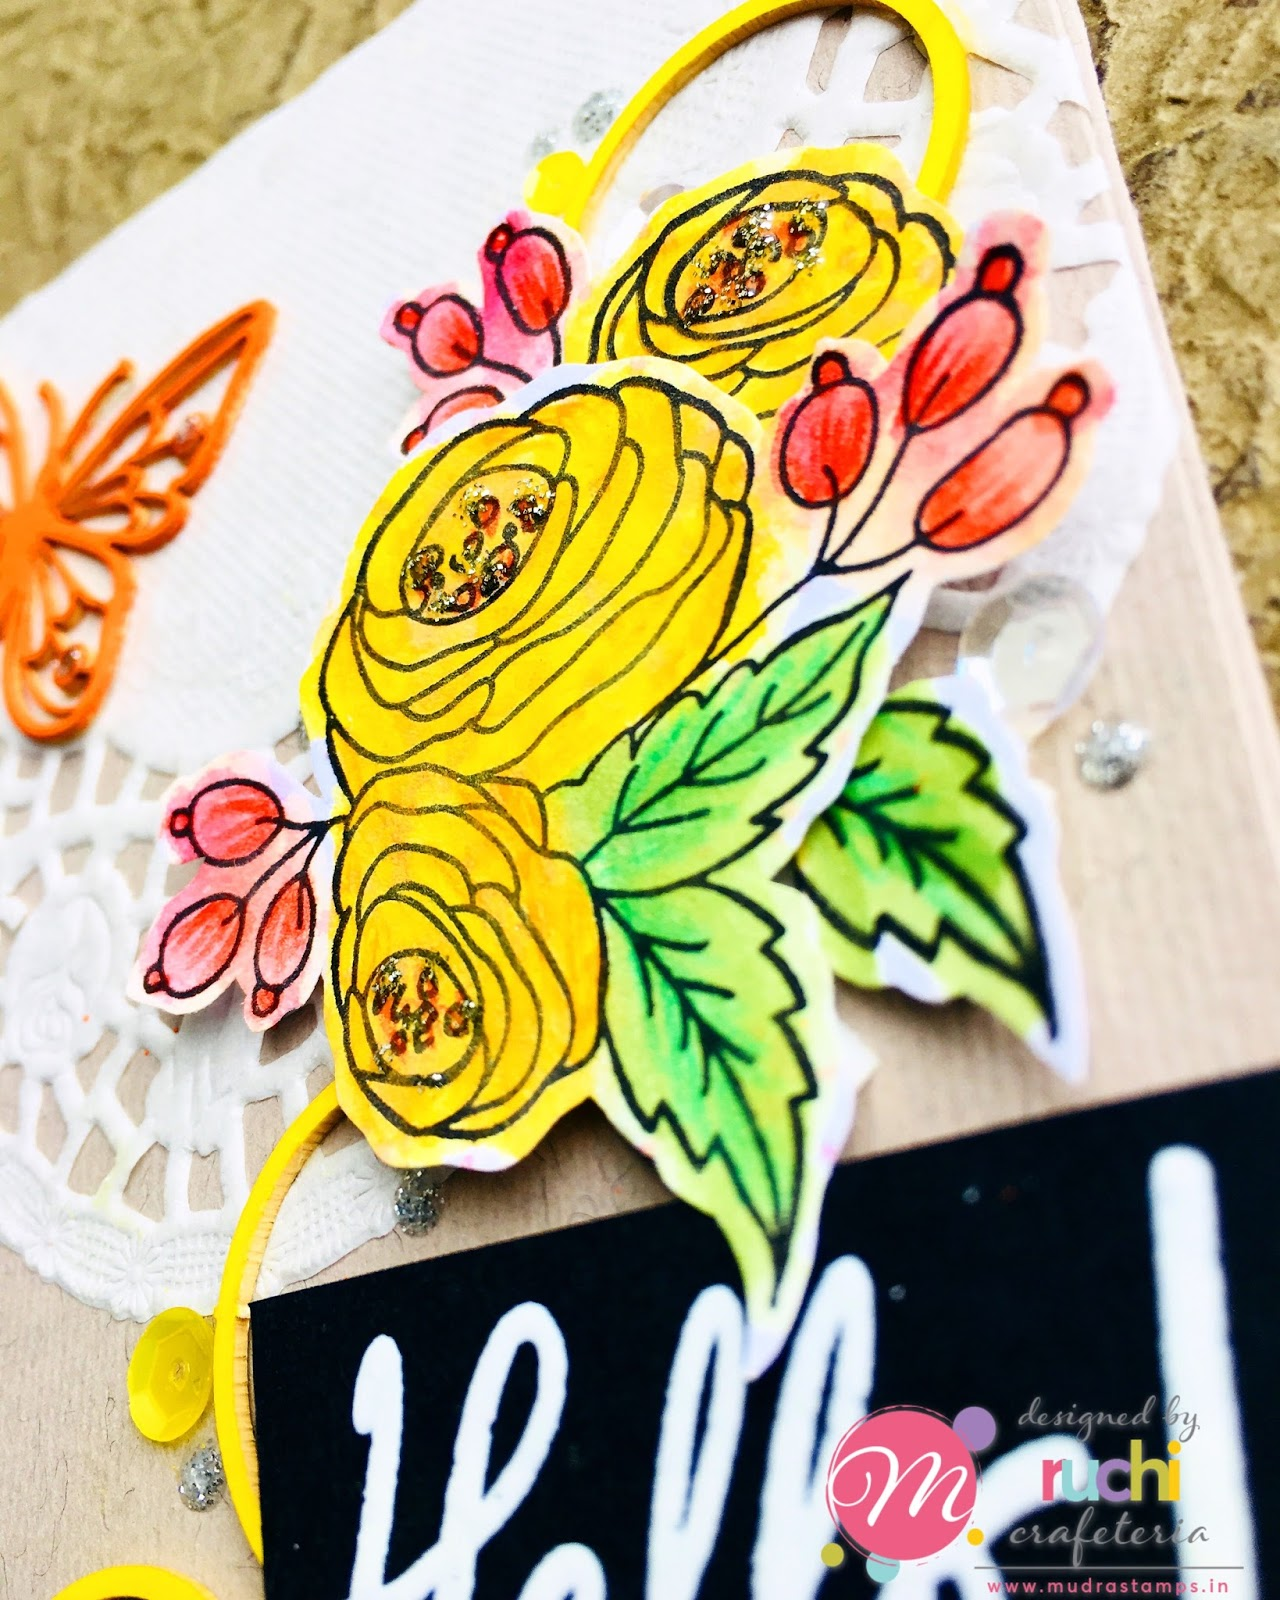 Mudra Craft Stamps: Floral Cards and Wall Decor!